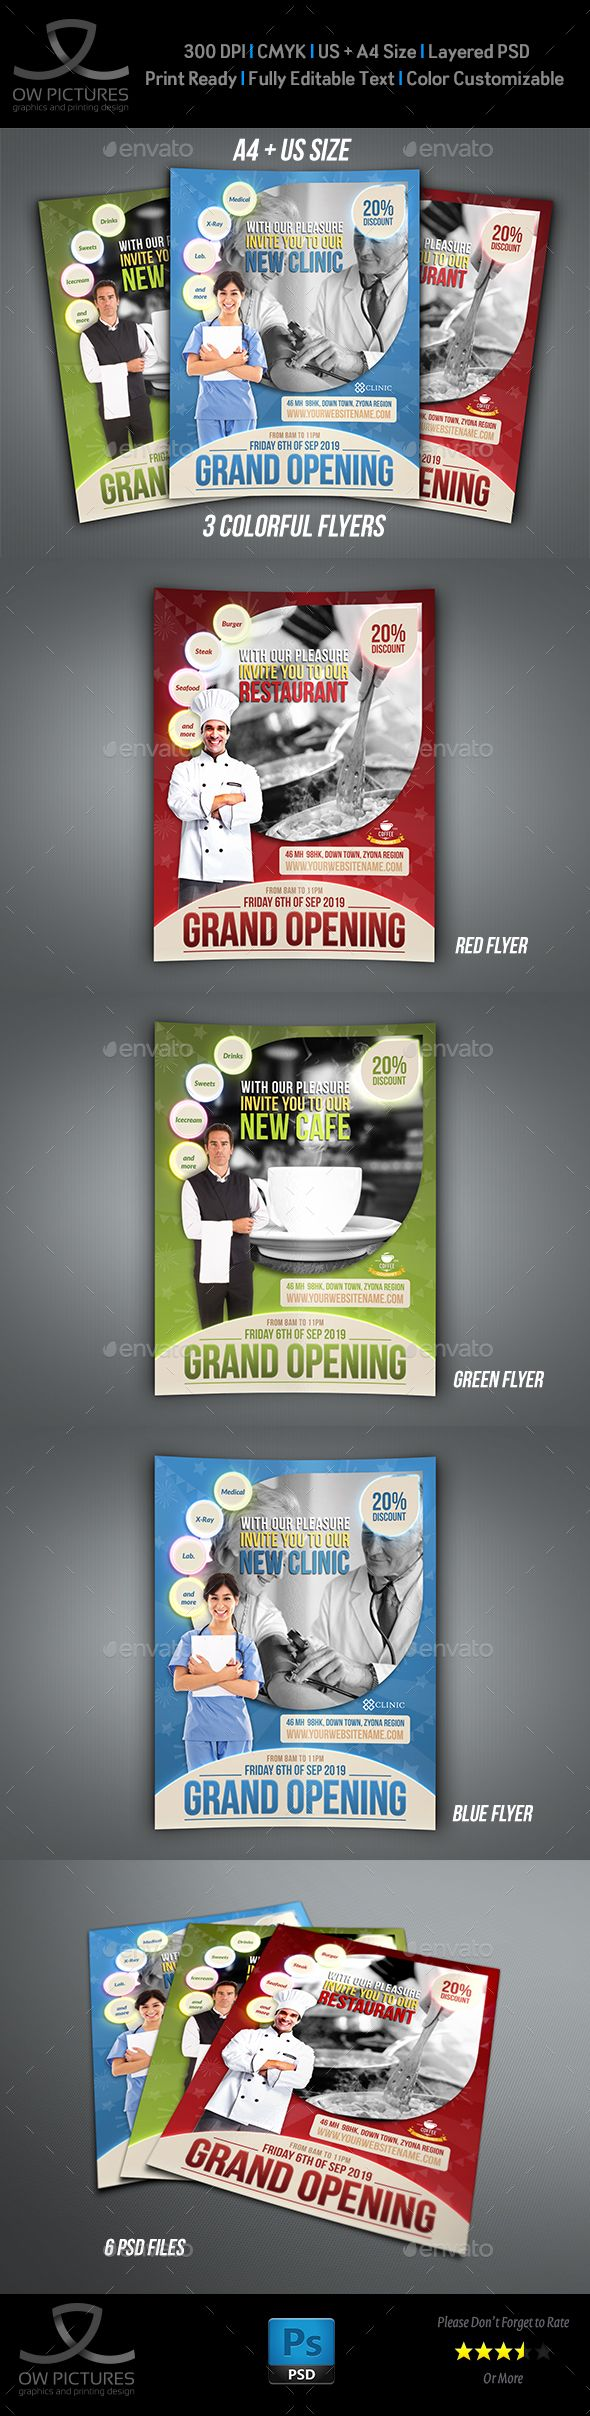 Grand Opening Flyer Template  Flyer Template Grand Opening And